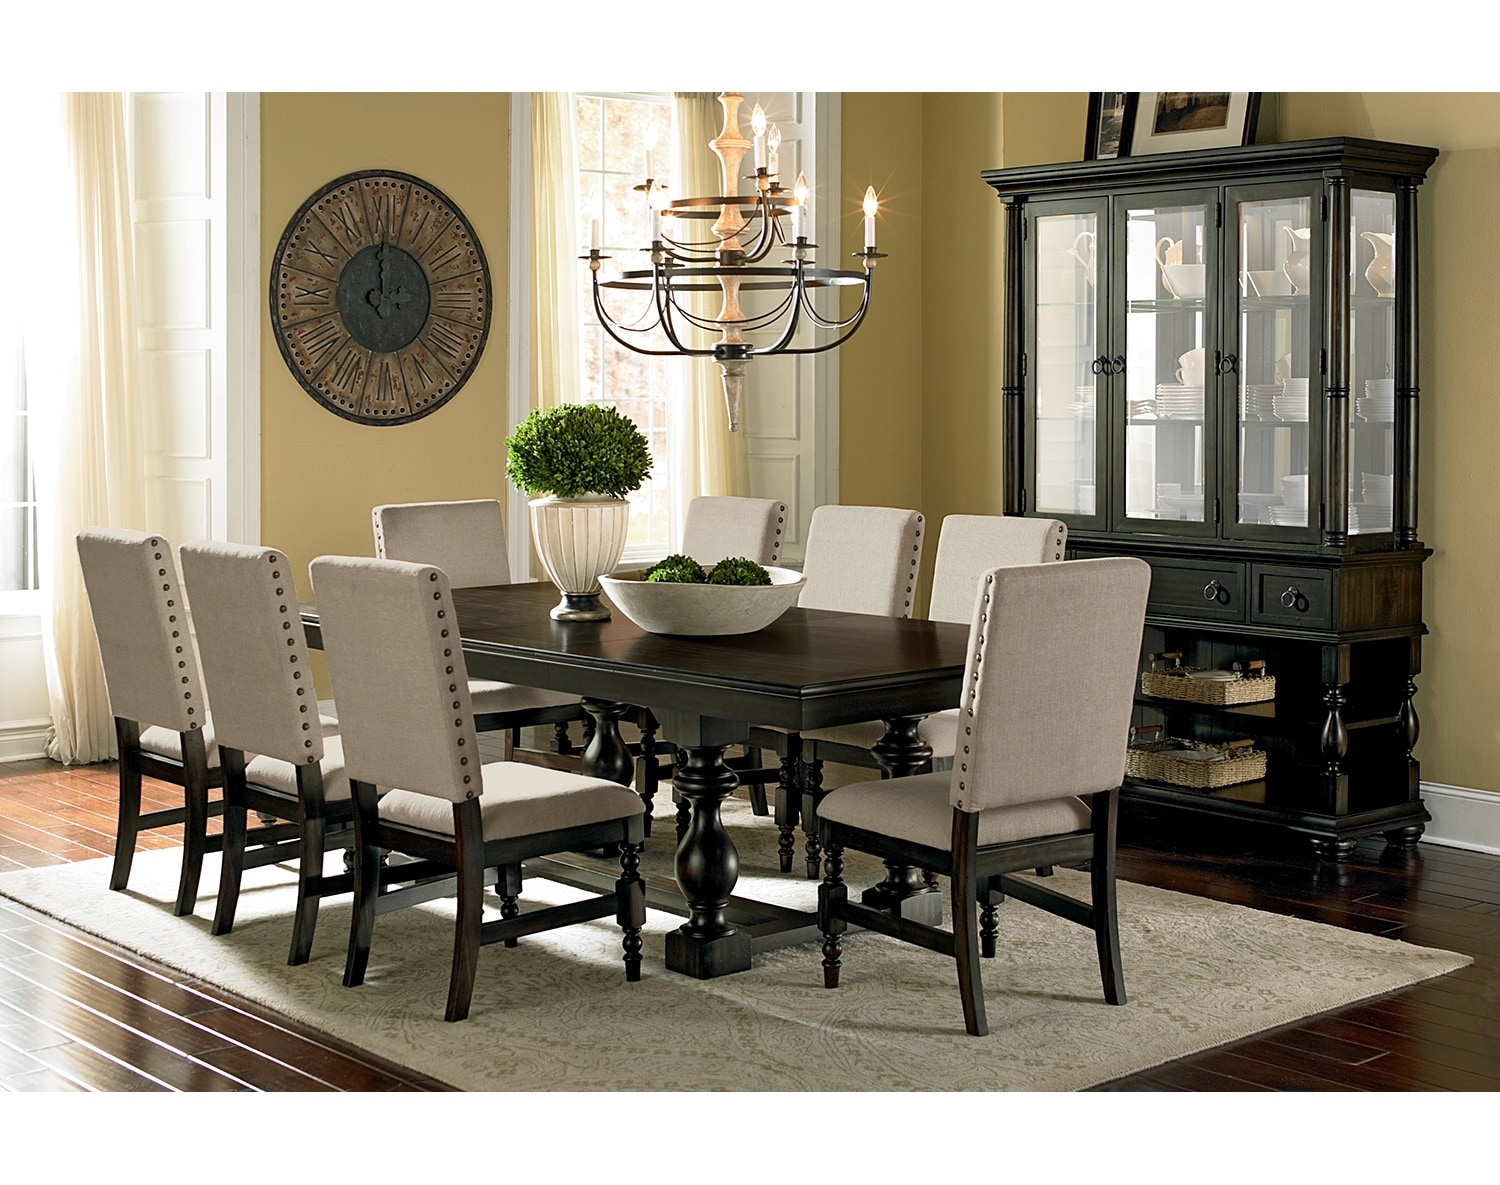 Dining Room Furniture - The Juliette Collection - Table